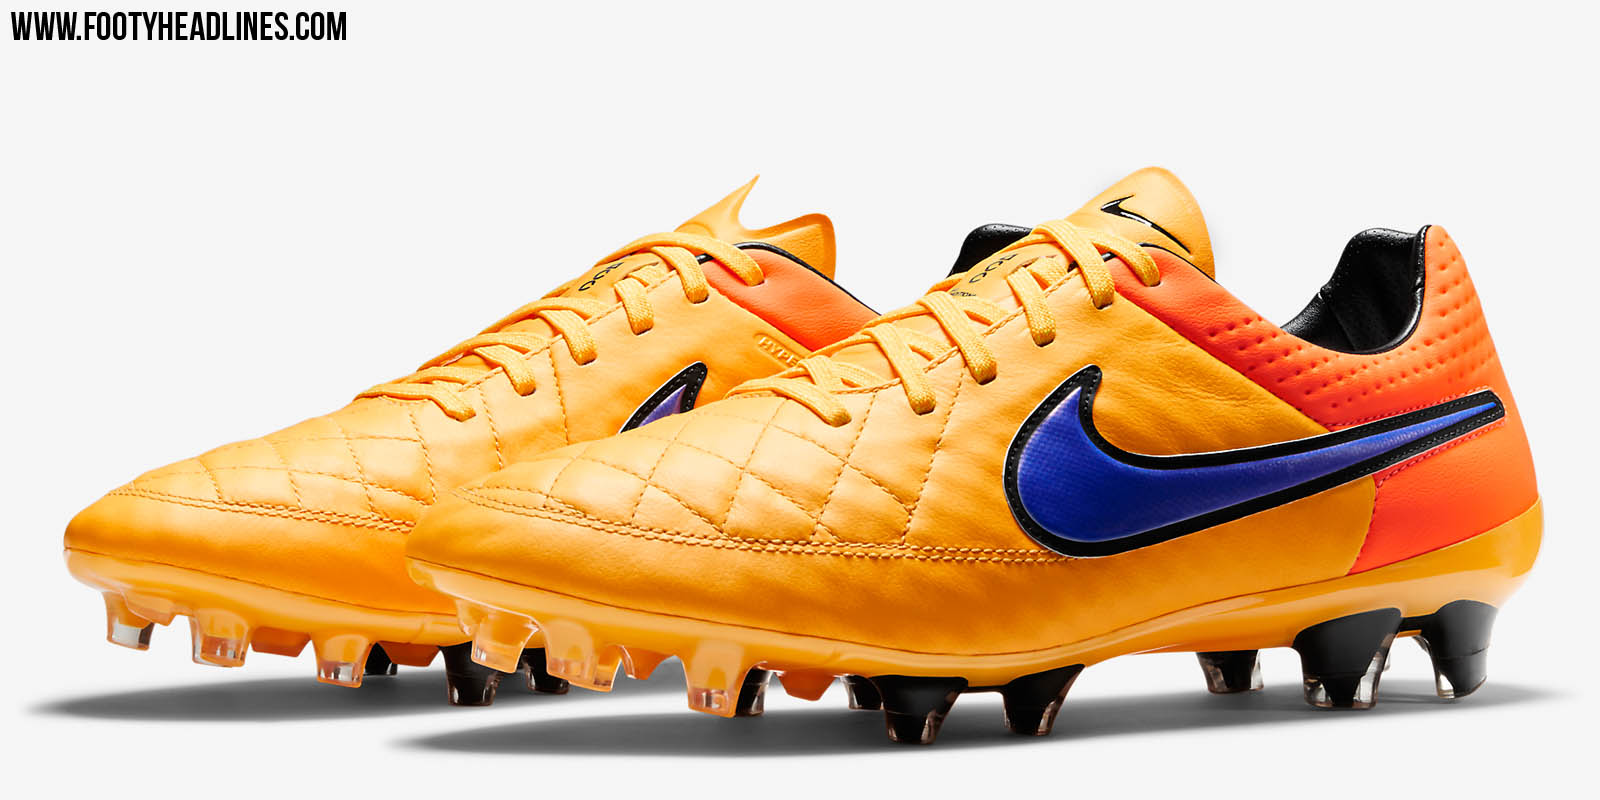 Nike Tiempo 2016 Boot Comparison - Legend v Legacy v Mystiq v ...